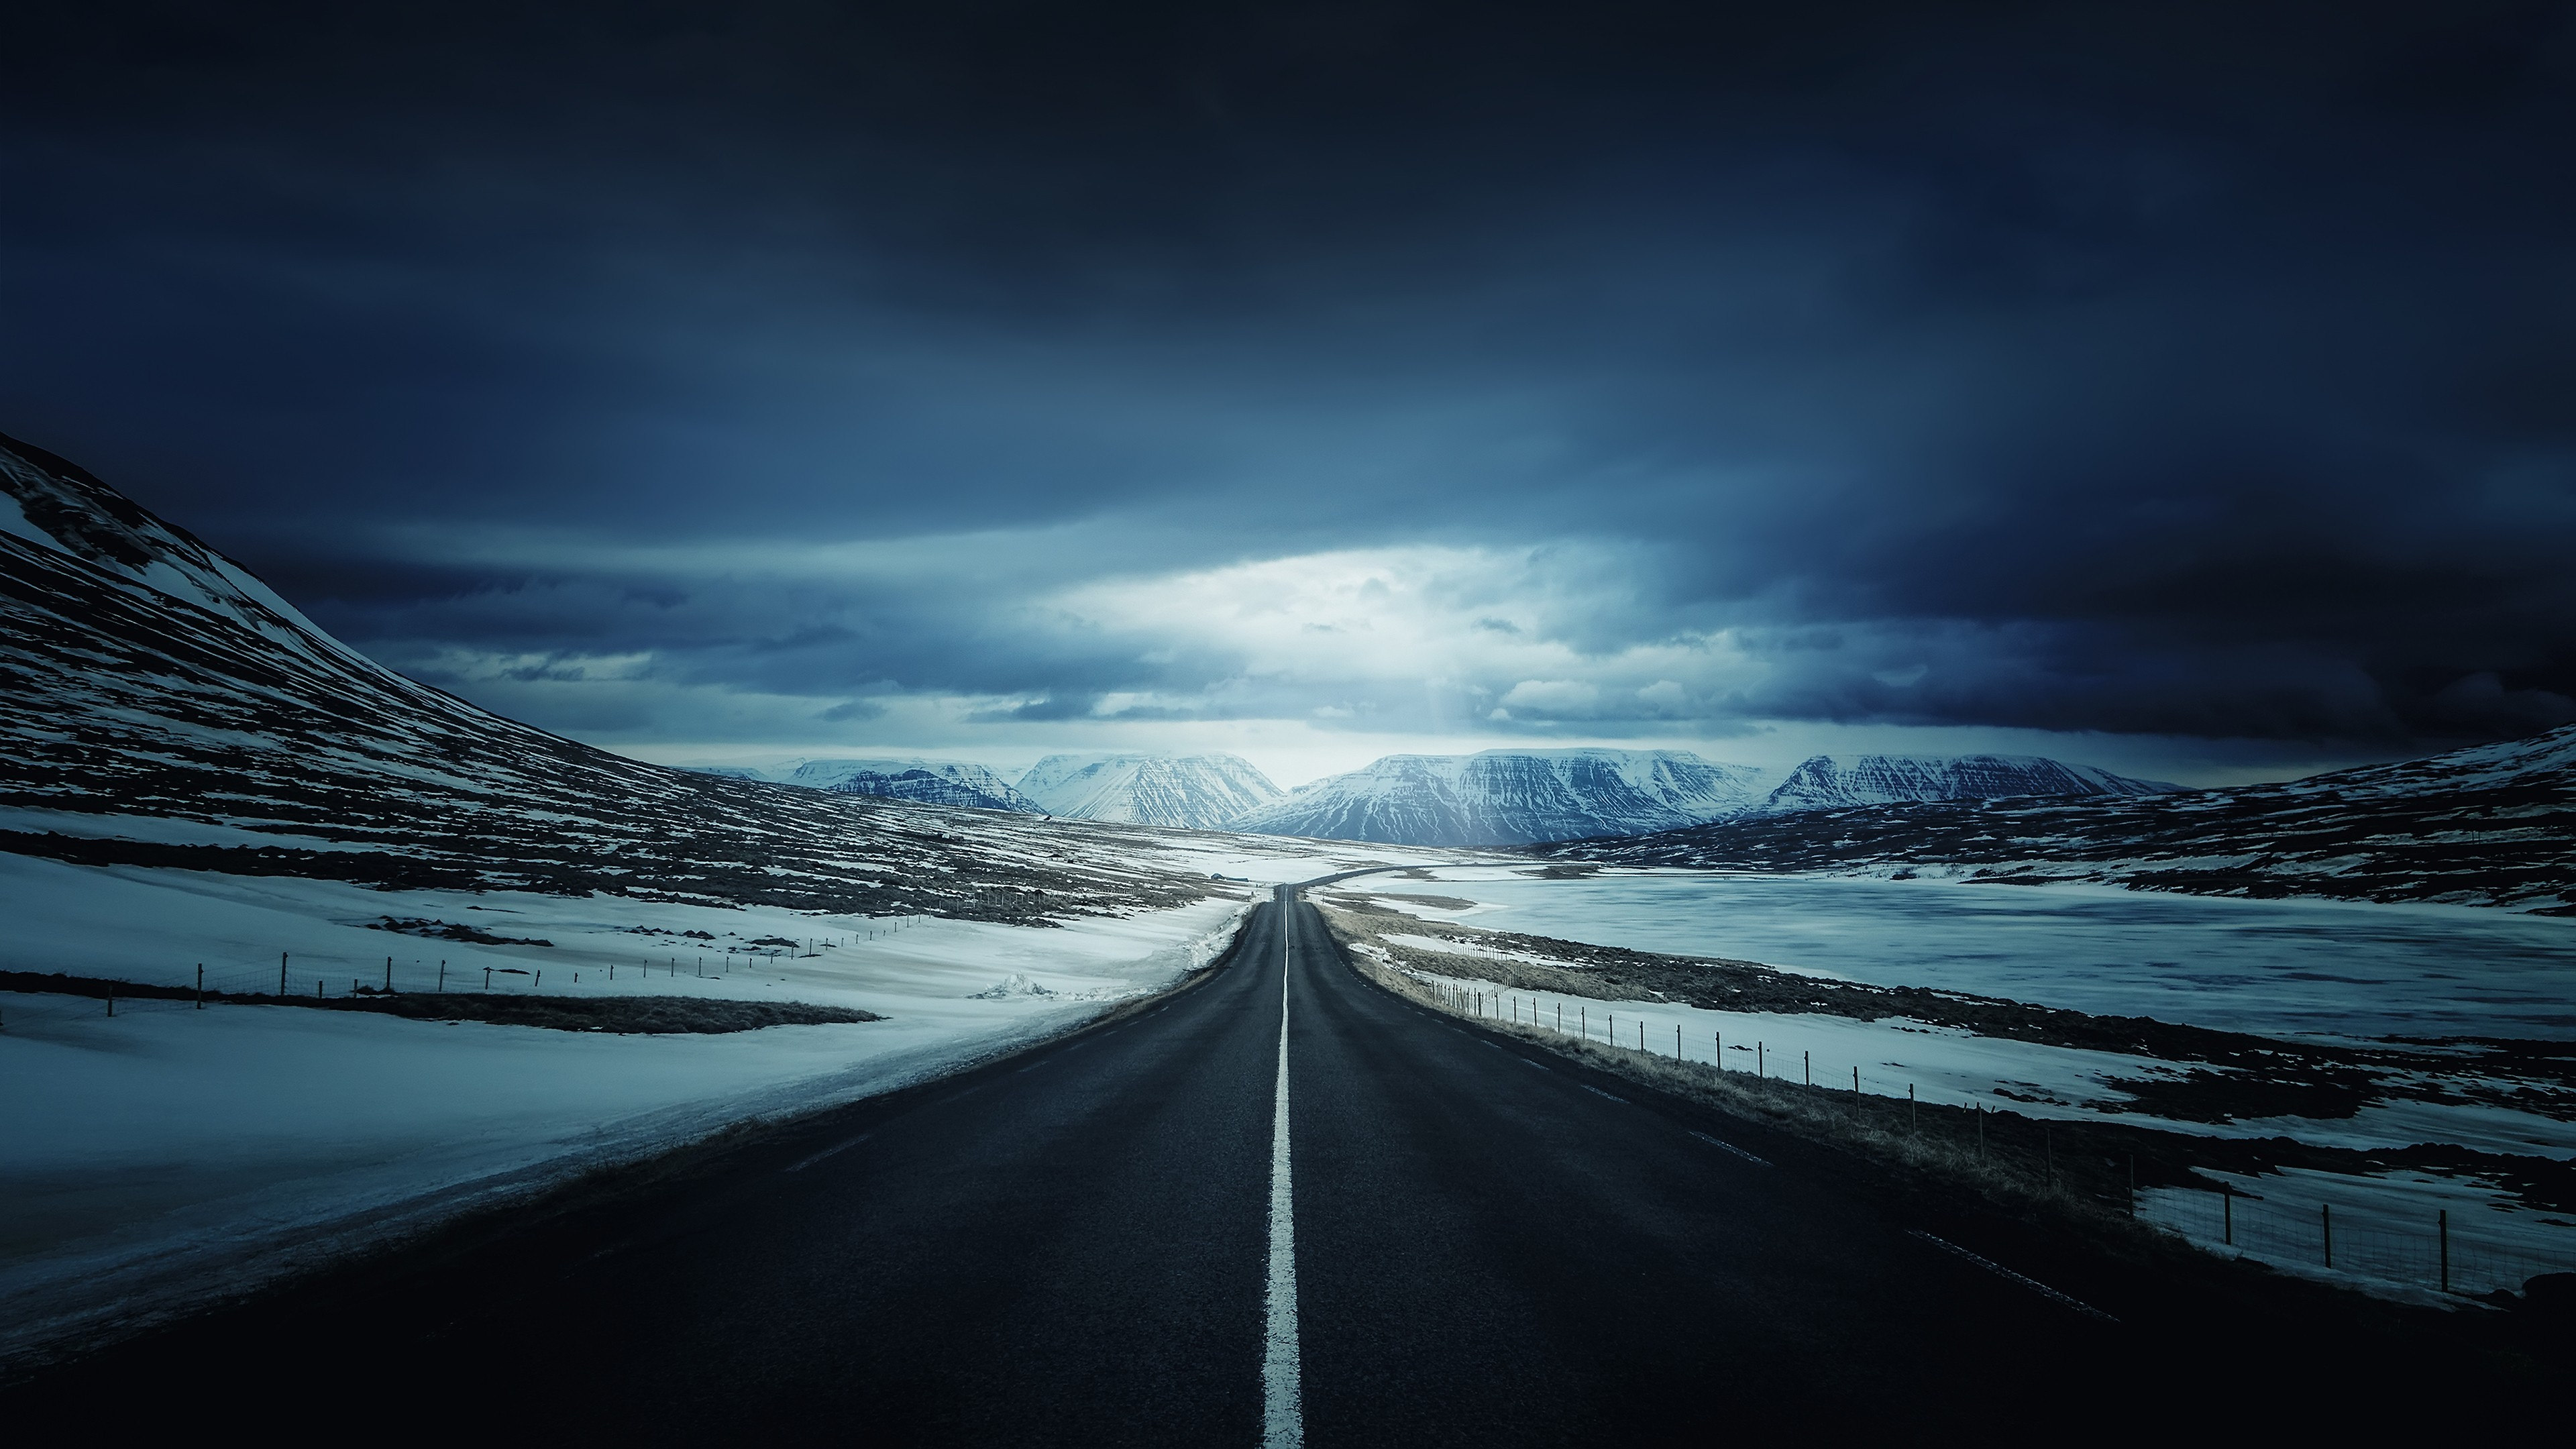 Road Iceland Clouds Highway Mountains Landscape 4k, HD ...